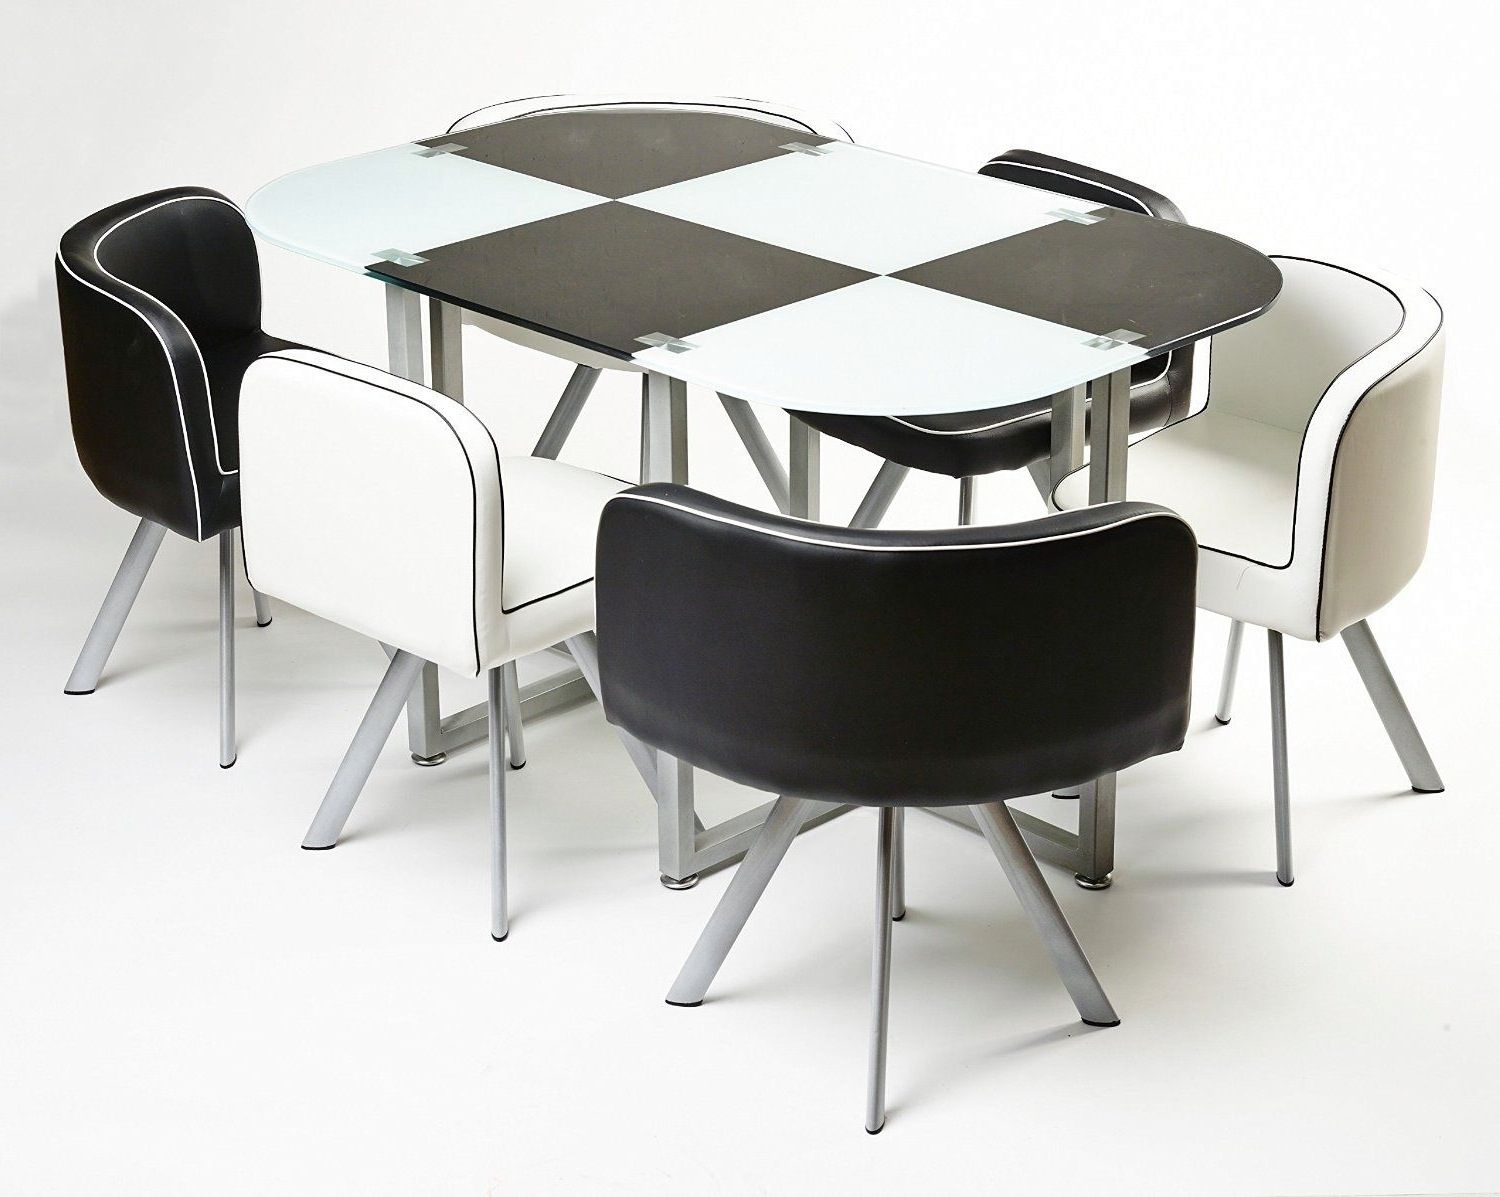 Space saving kitchen table for 6